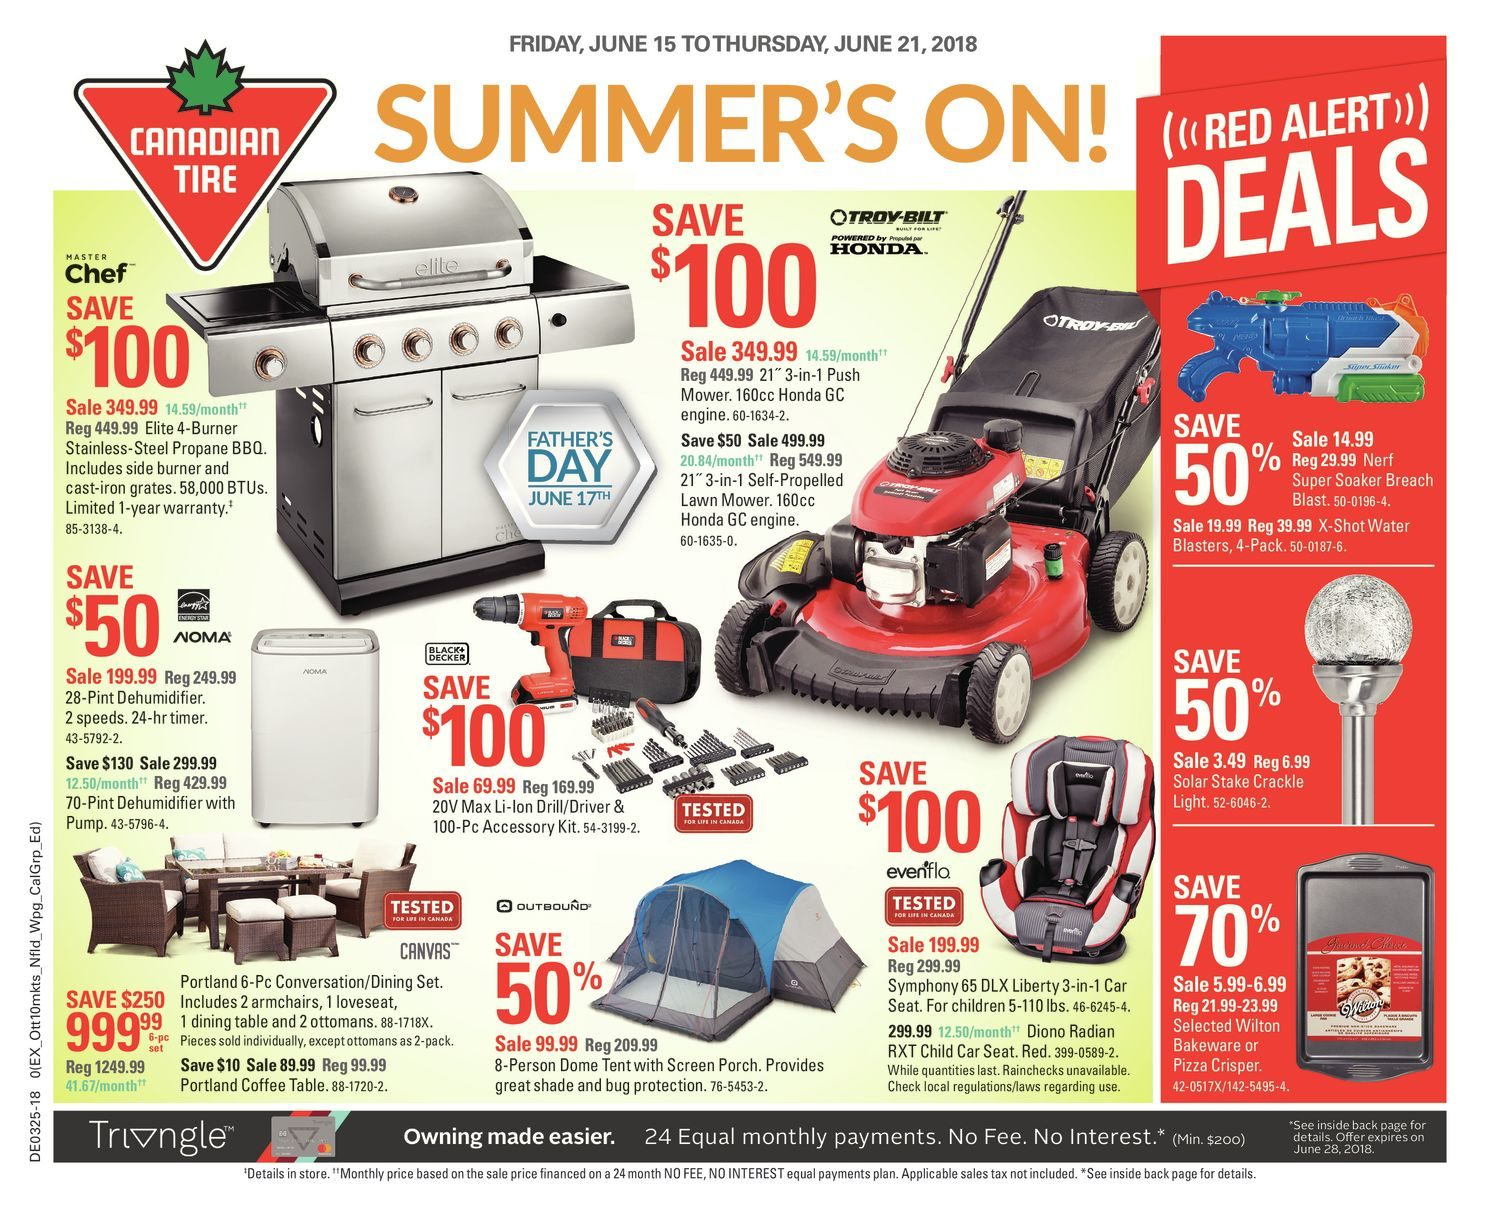 Canadian tire weekly flyer weekly summers on jun 15 21 canadian tire weekly flyer weekly summers on jun 15 21 redflagdeals keyboard keysfo Images